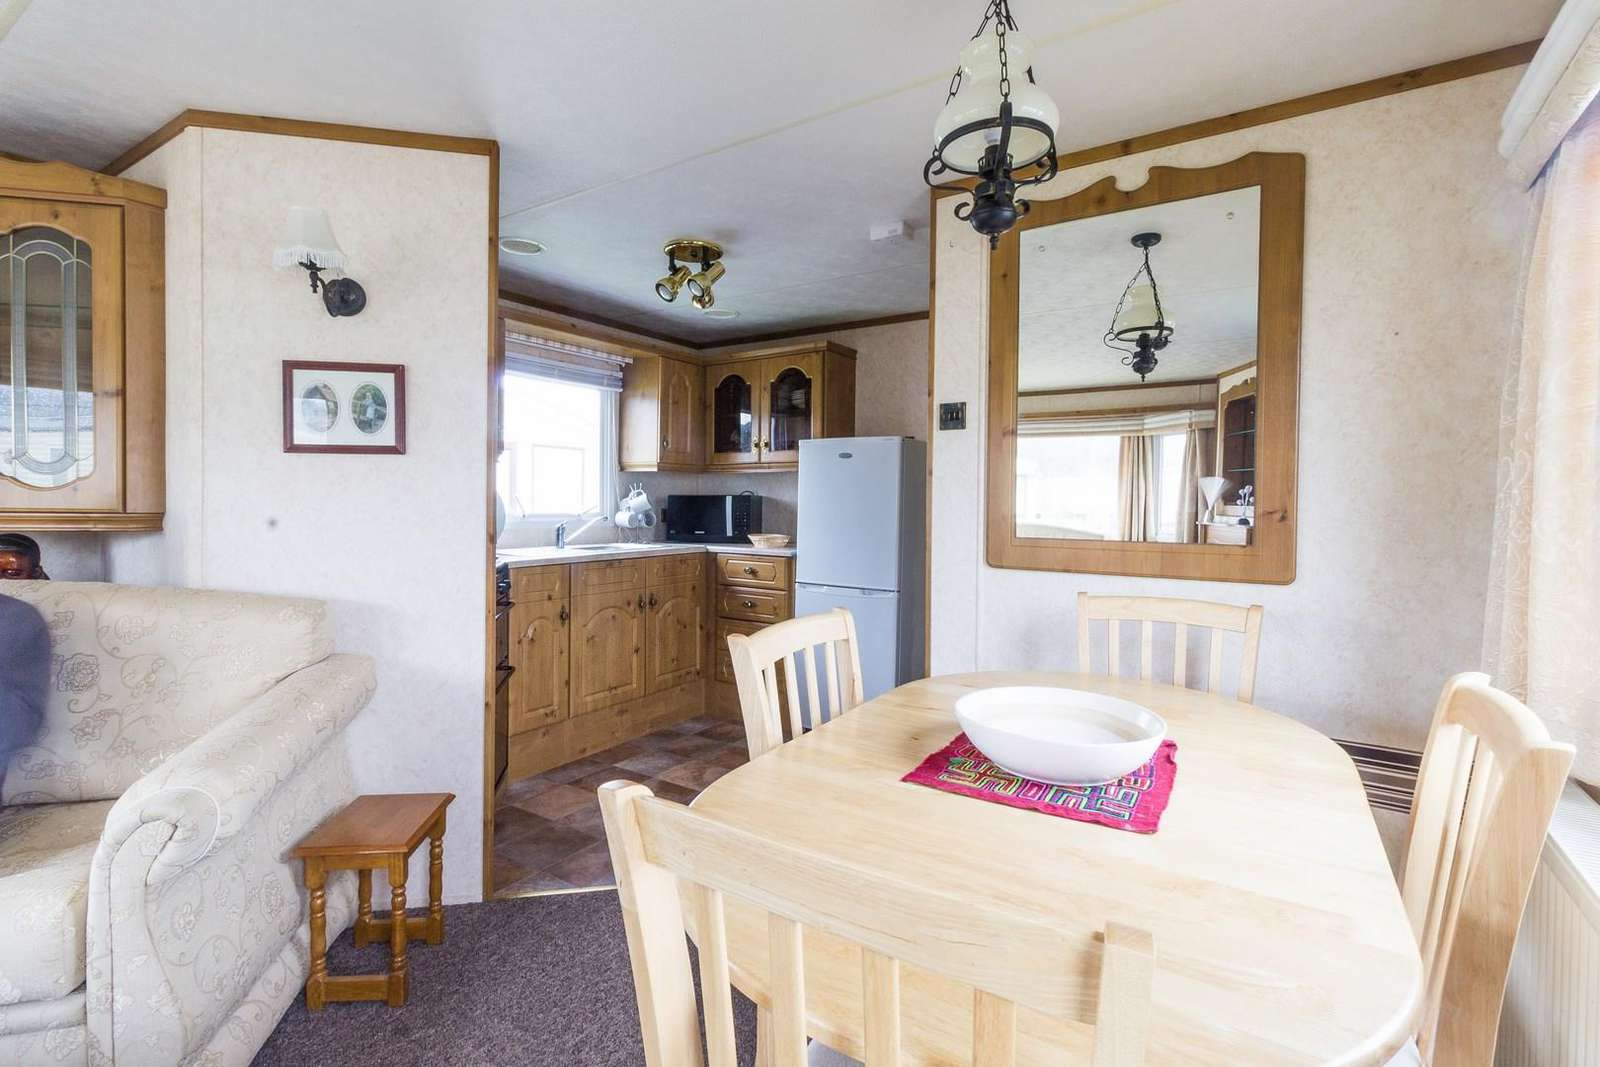 Great place to dine with your family or friends at this self-catering accommodation